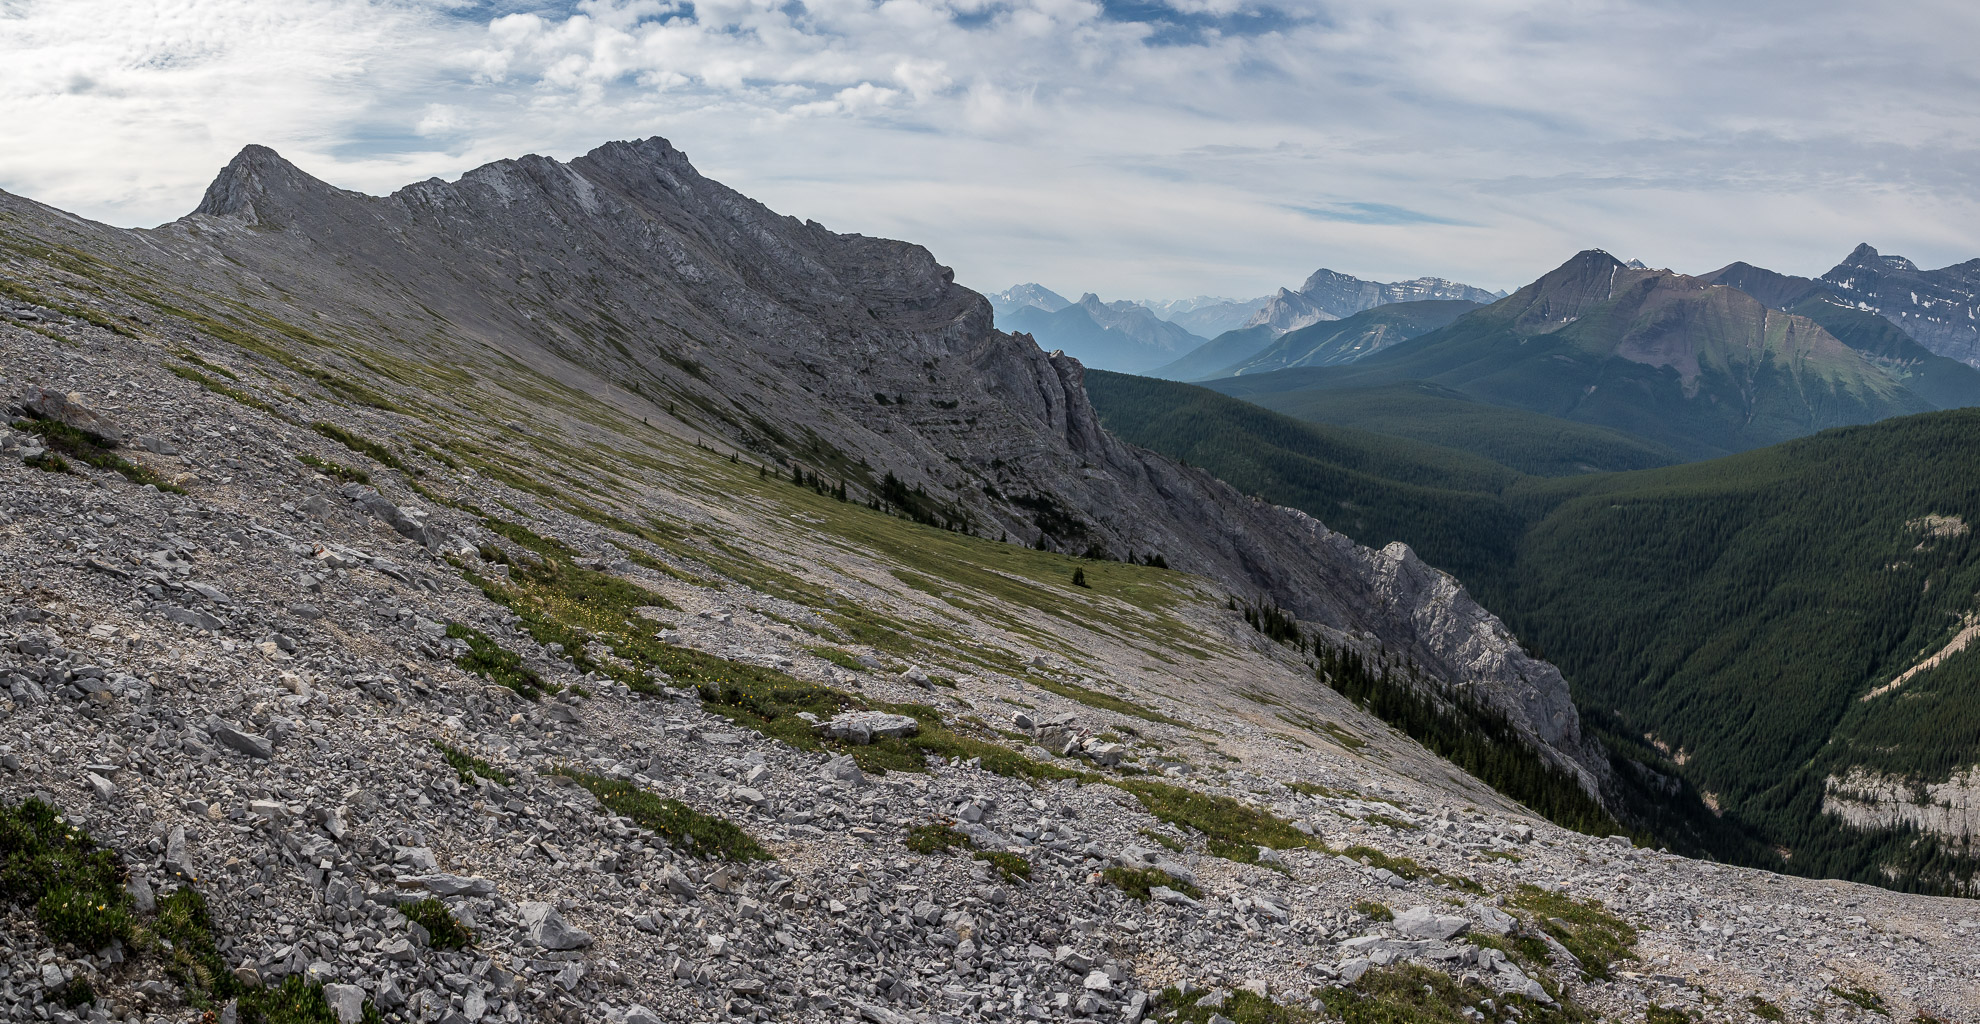 A great view from the top of the gully, looking ahead to the summit.